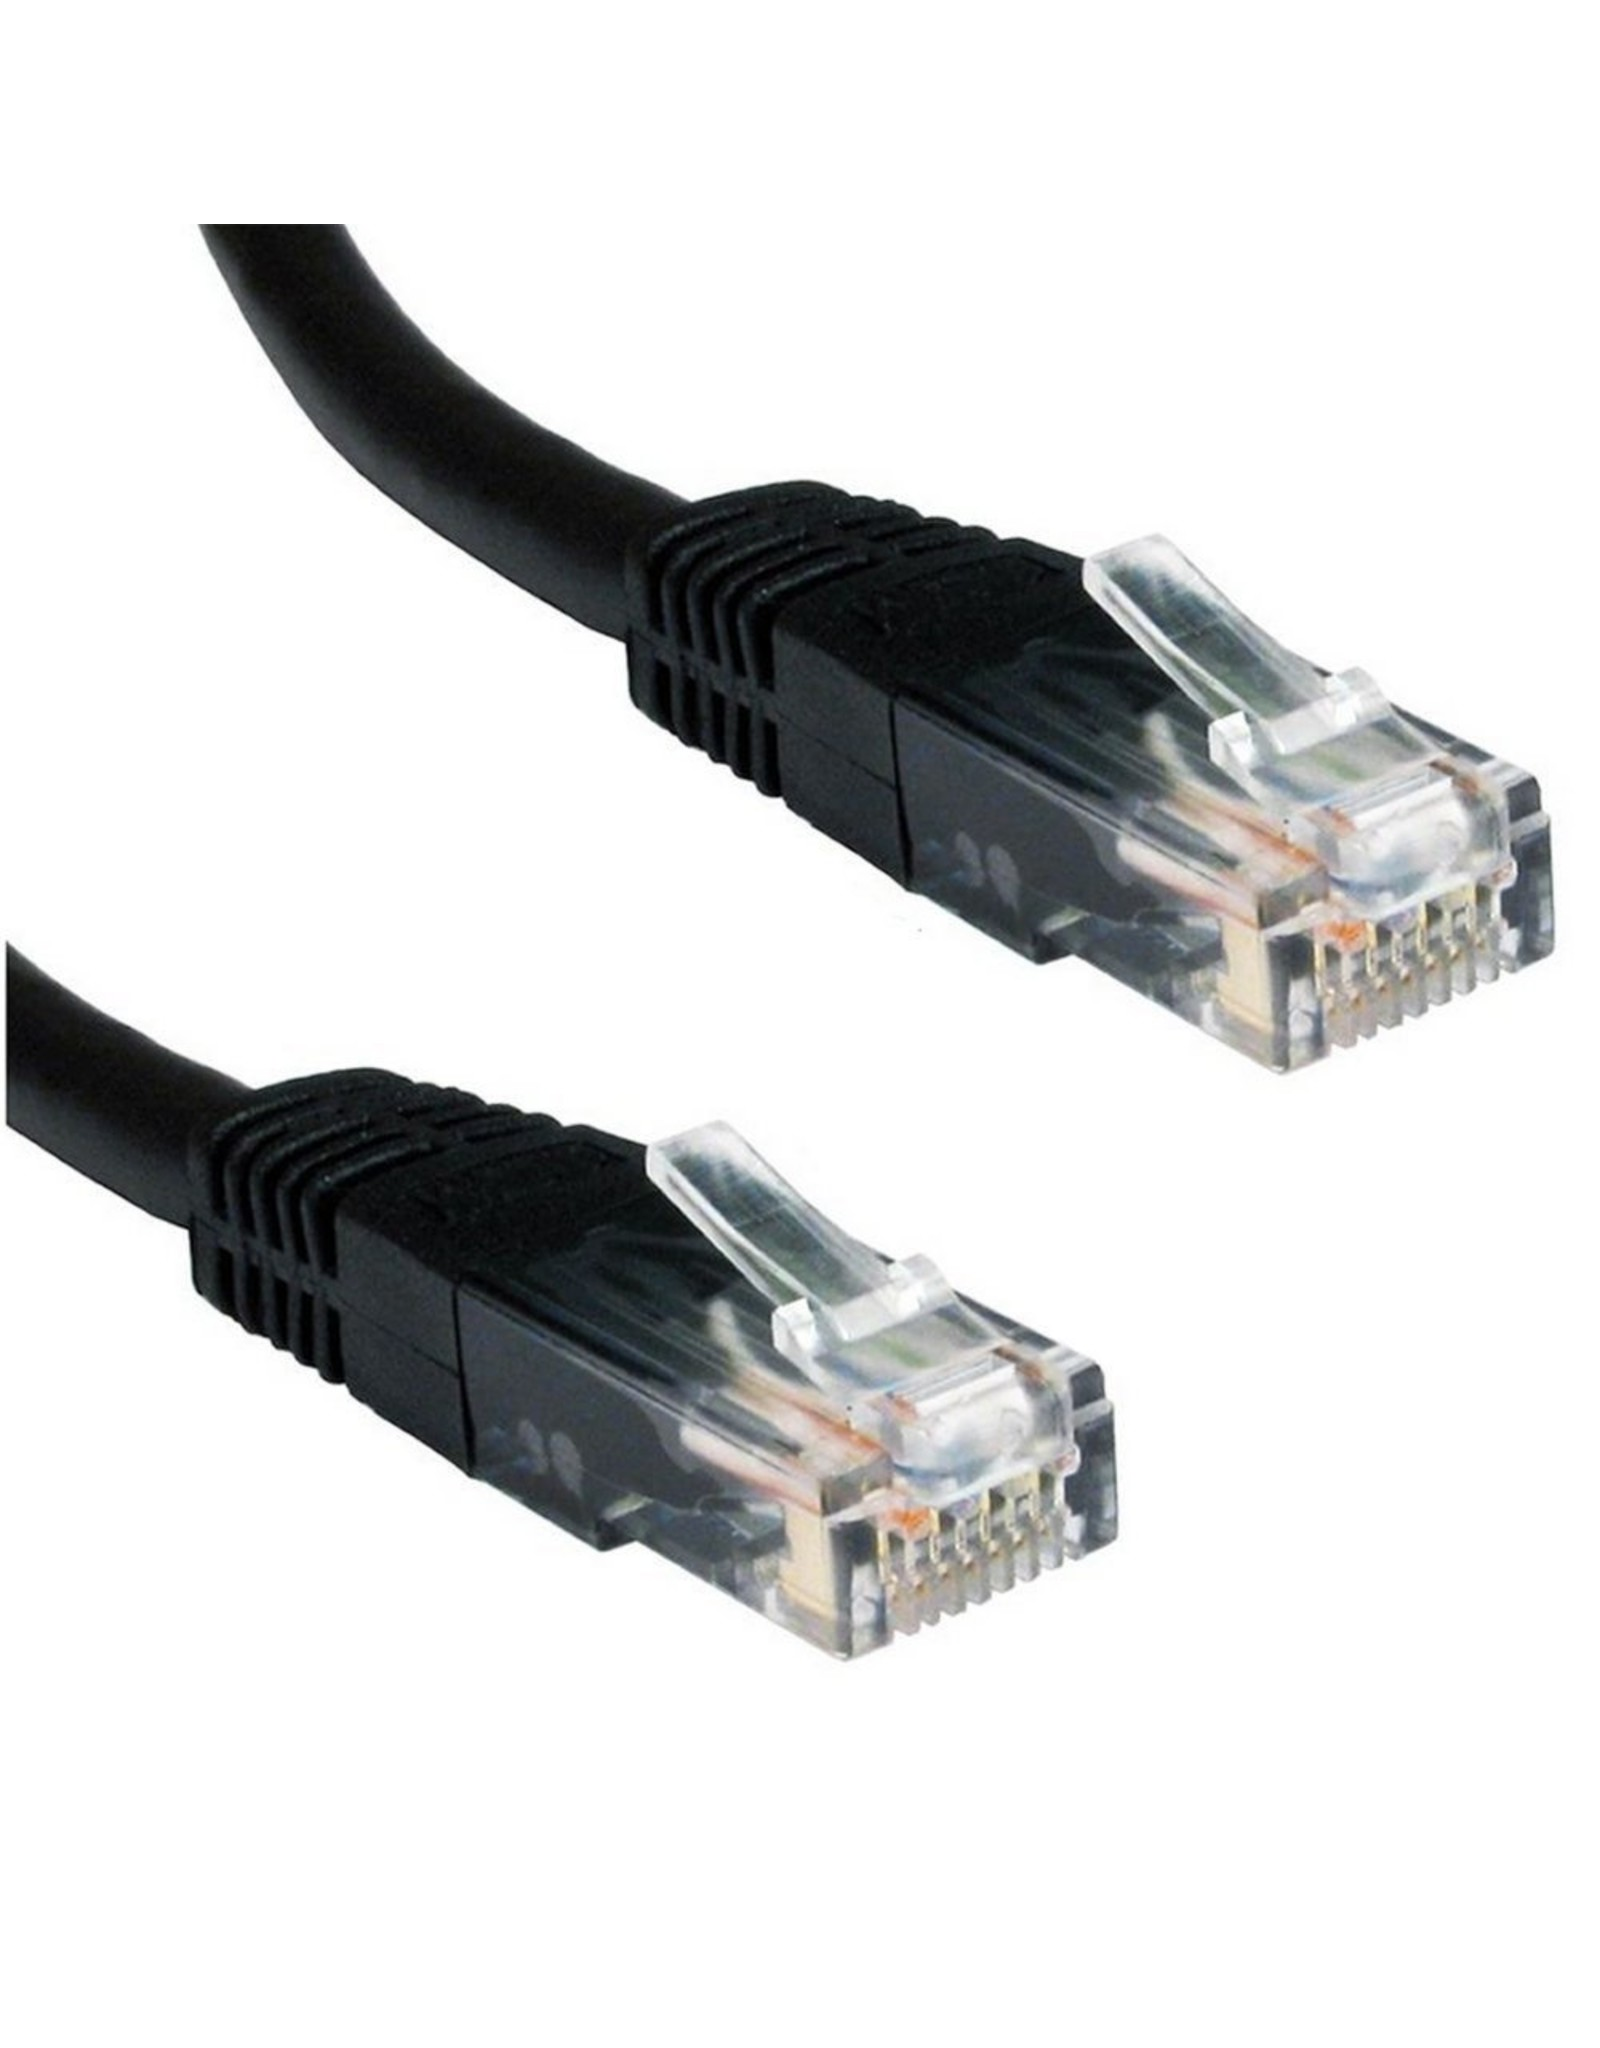 Ewent OEM CAT5e Networking Cable 1 Meter Black